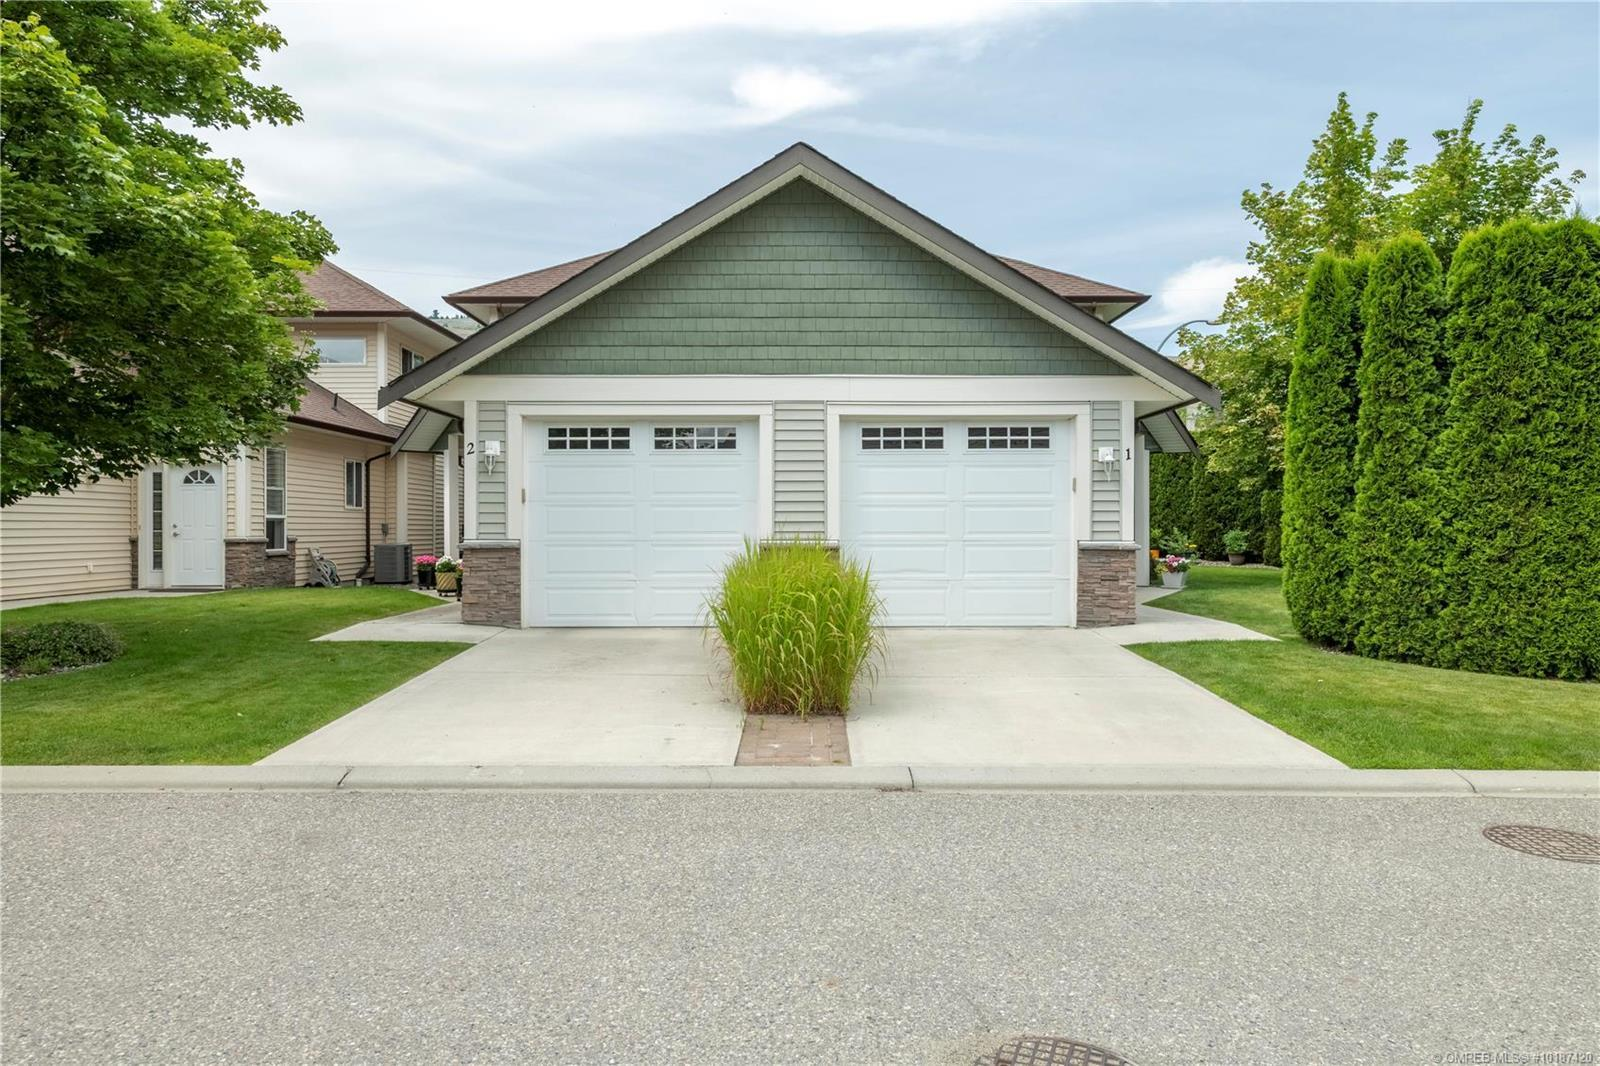 Removed: 1 - 100 Palmer Road, Vernon, BC - Removed on 2019-08-01 07:27:12